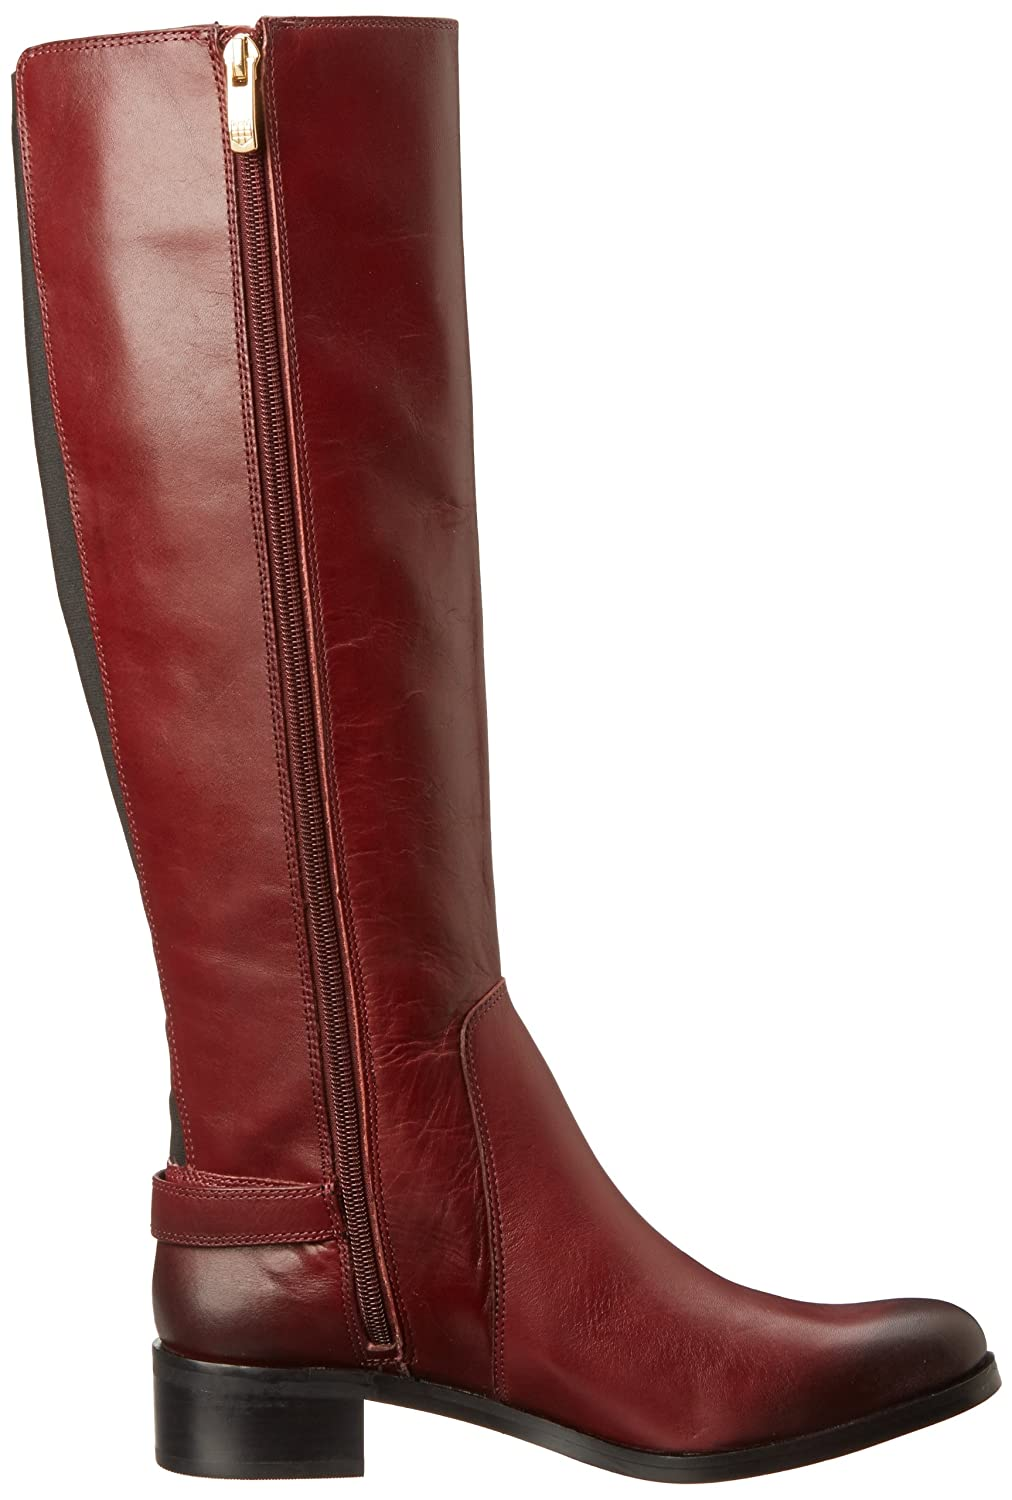 Vince Camuto Womens Volero Riding Boot